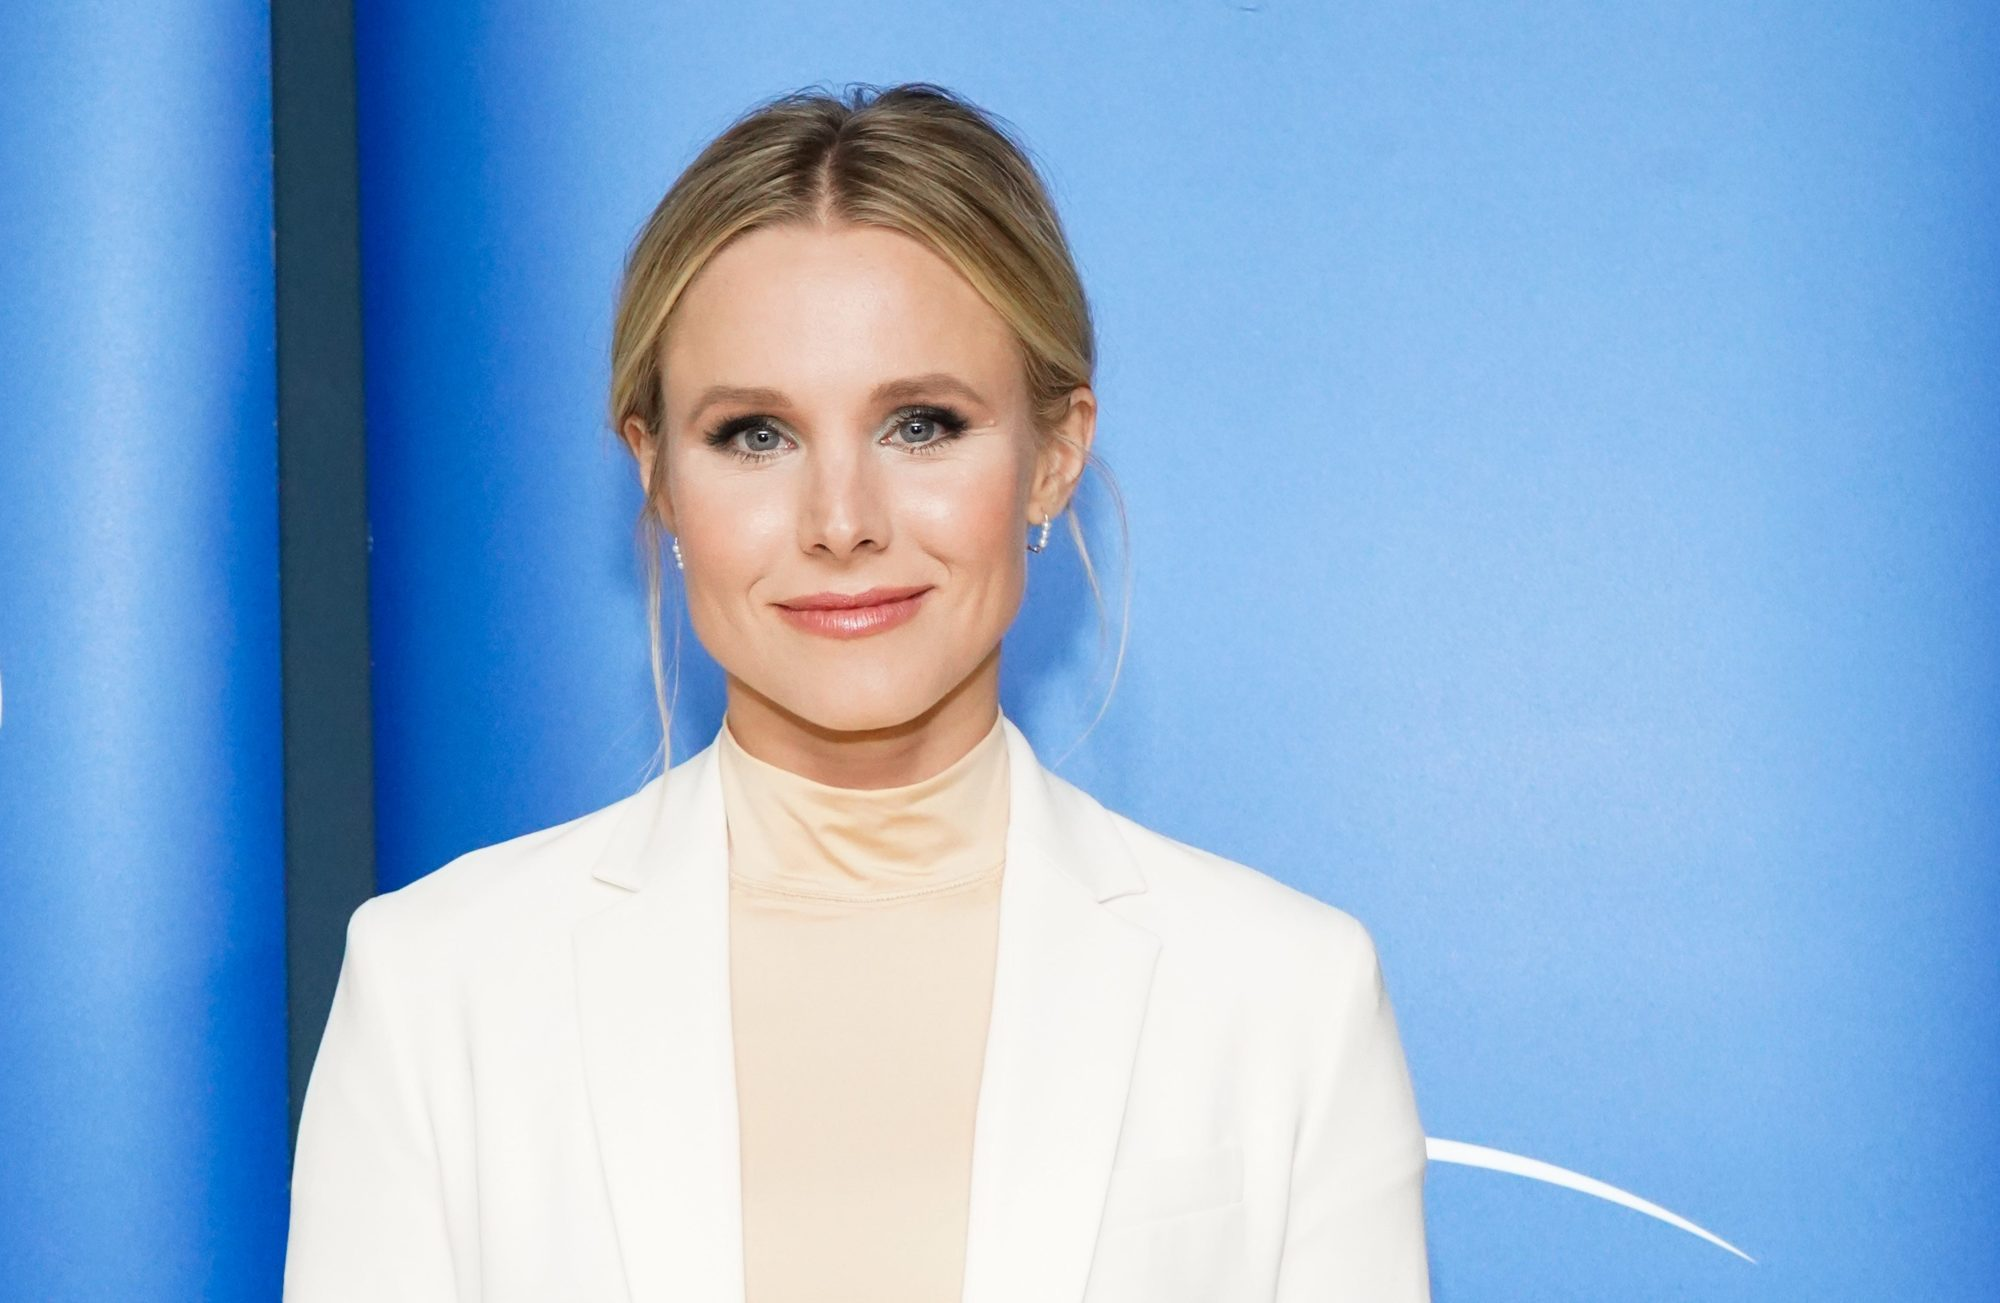 Snacking All Day? You Might Need Carbs Like Kristen Bell